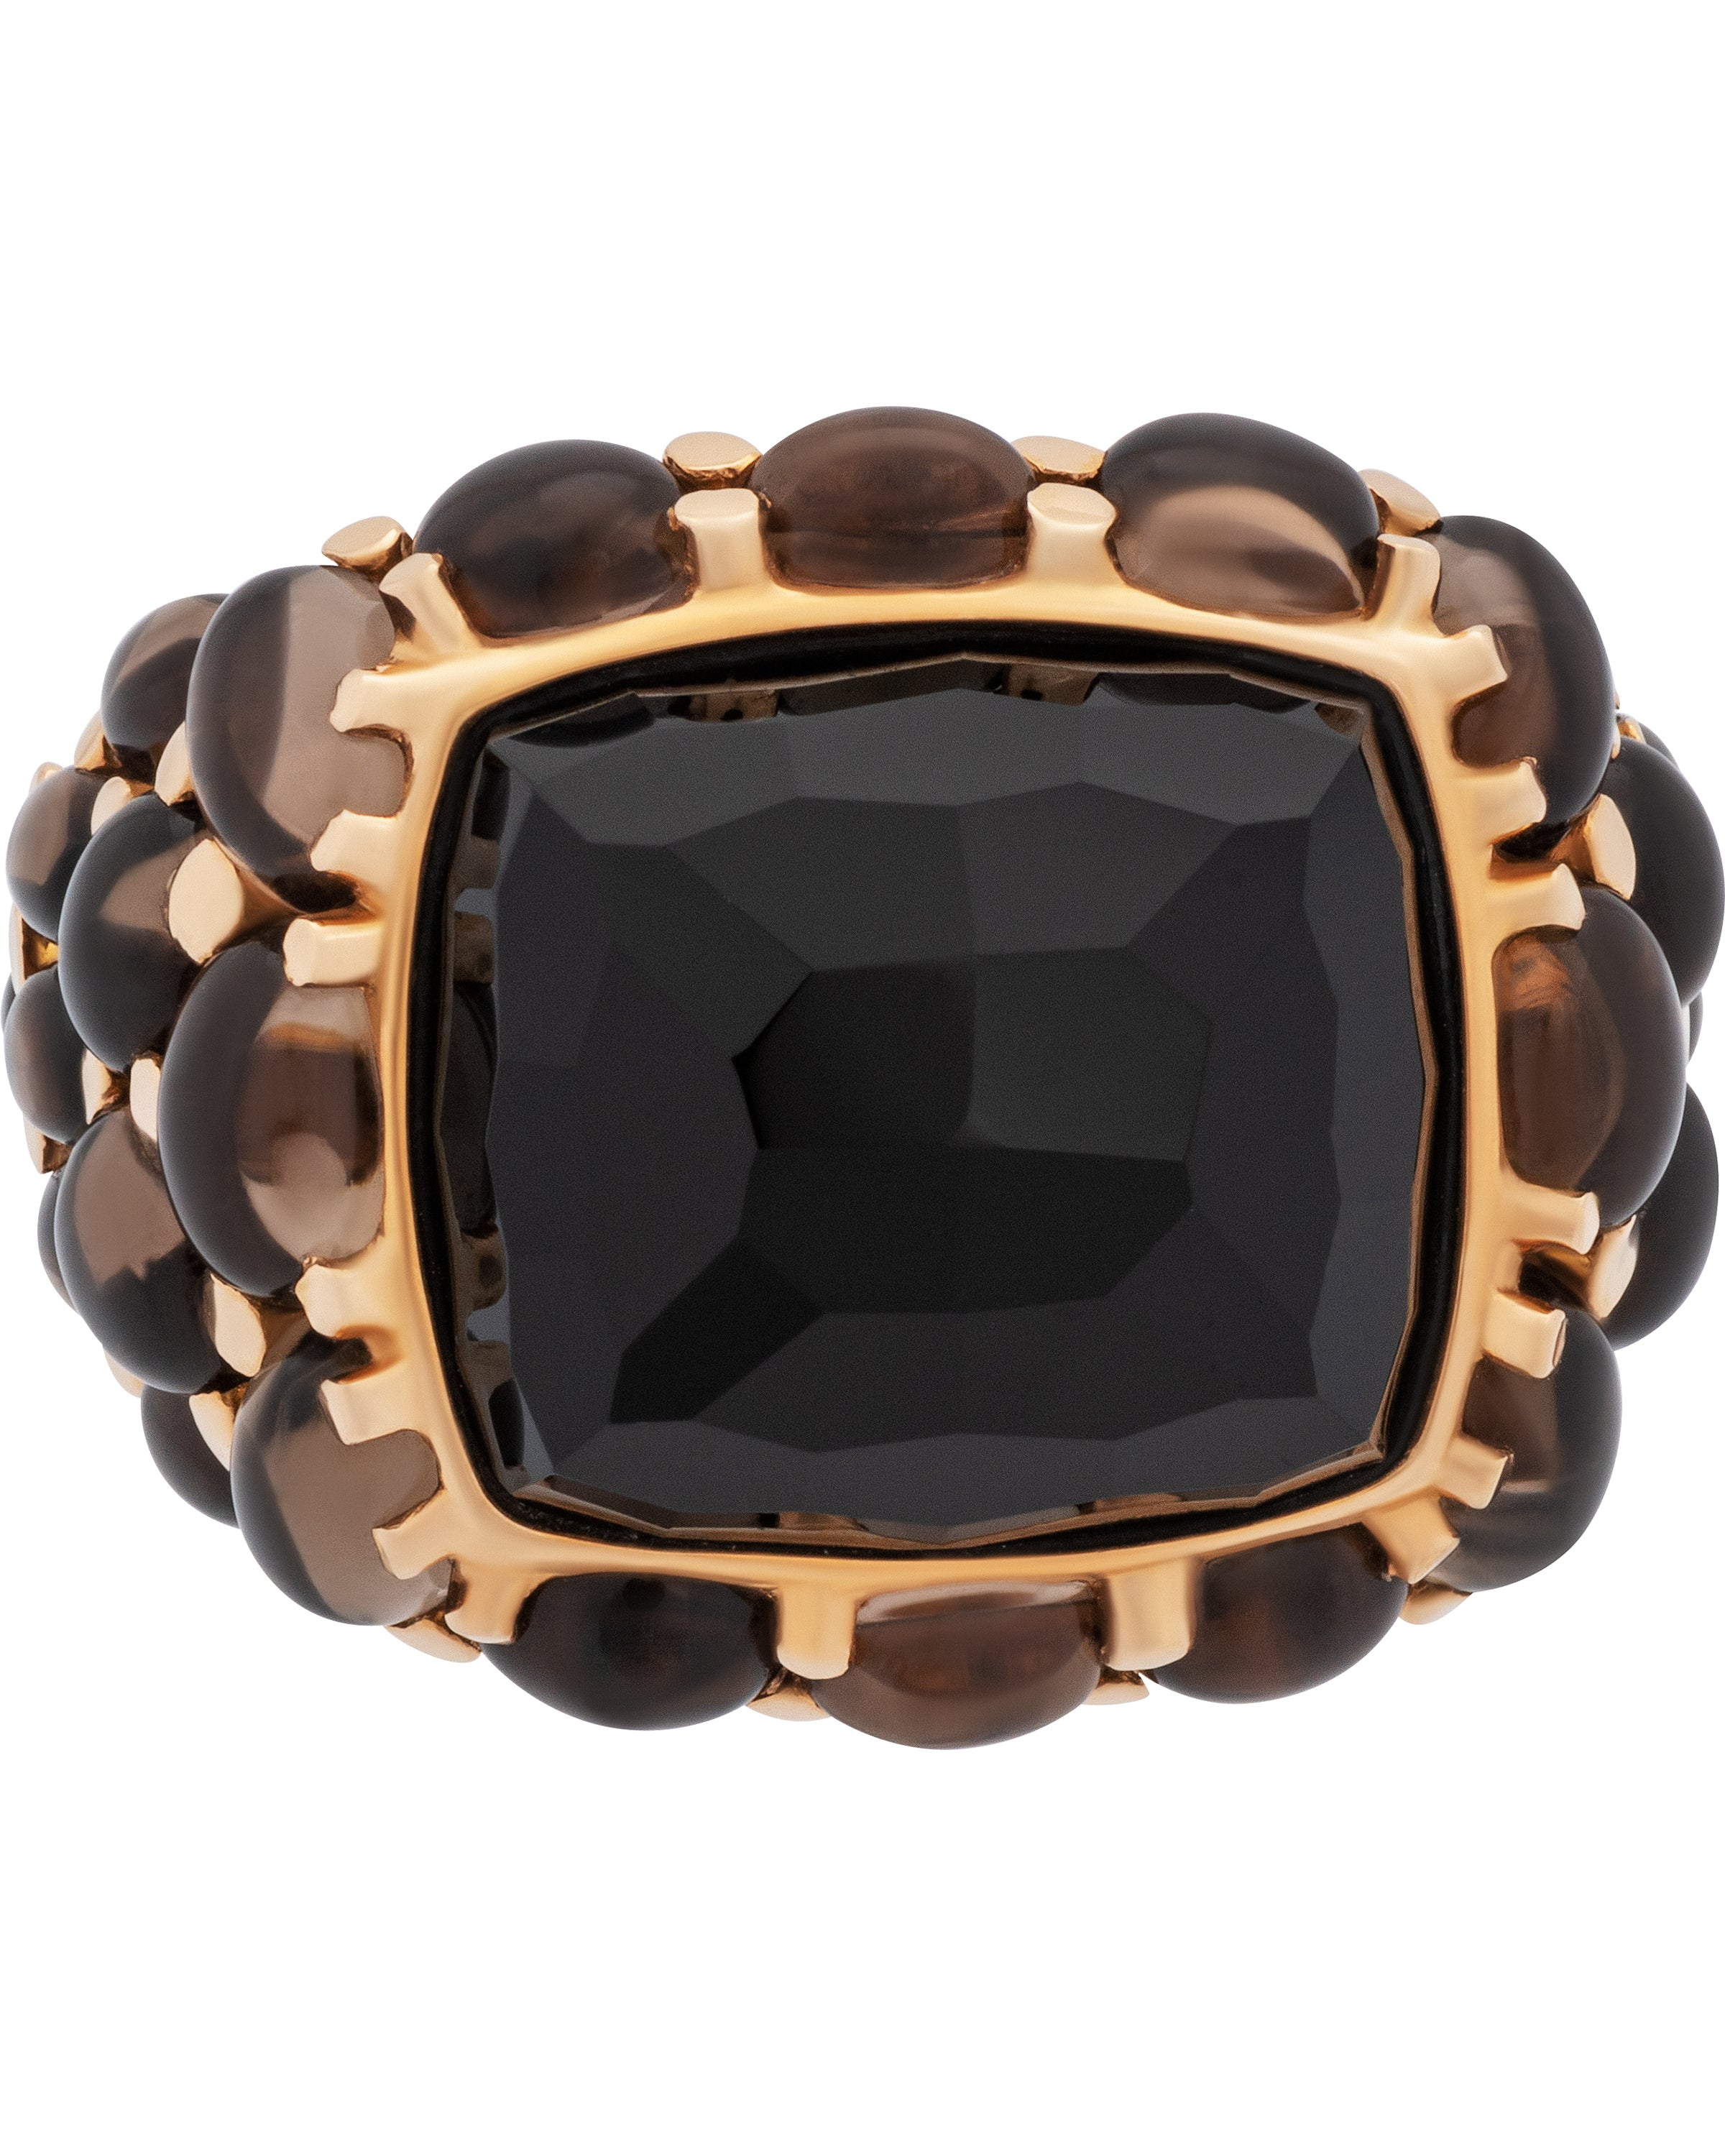 Mimi Milano 18k Rose Gold Quartz and Agate Ring A151RO8F